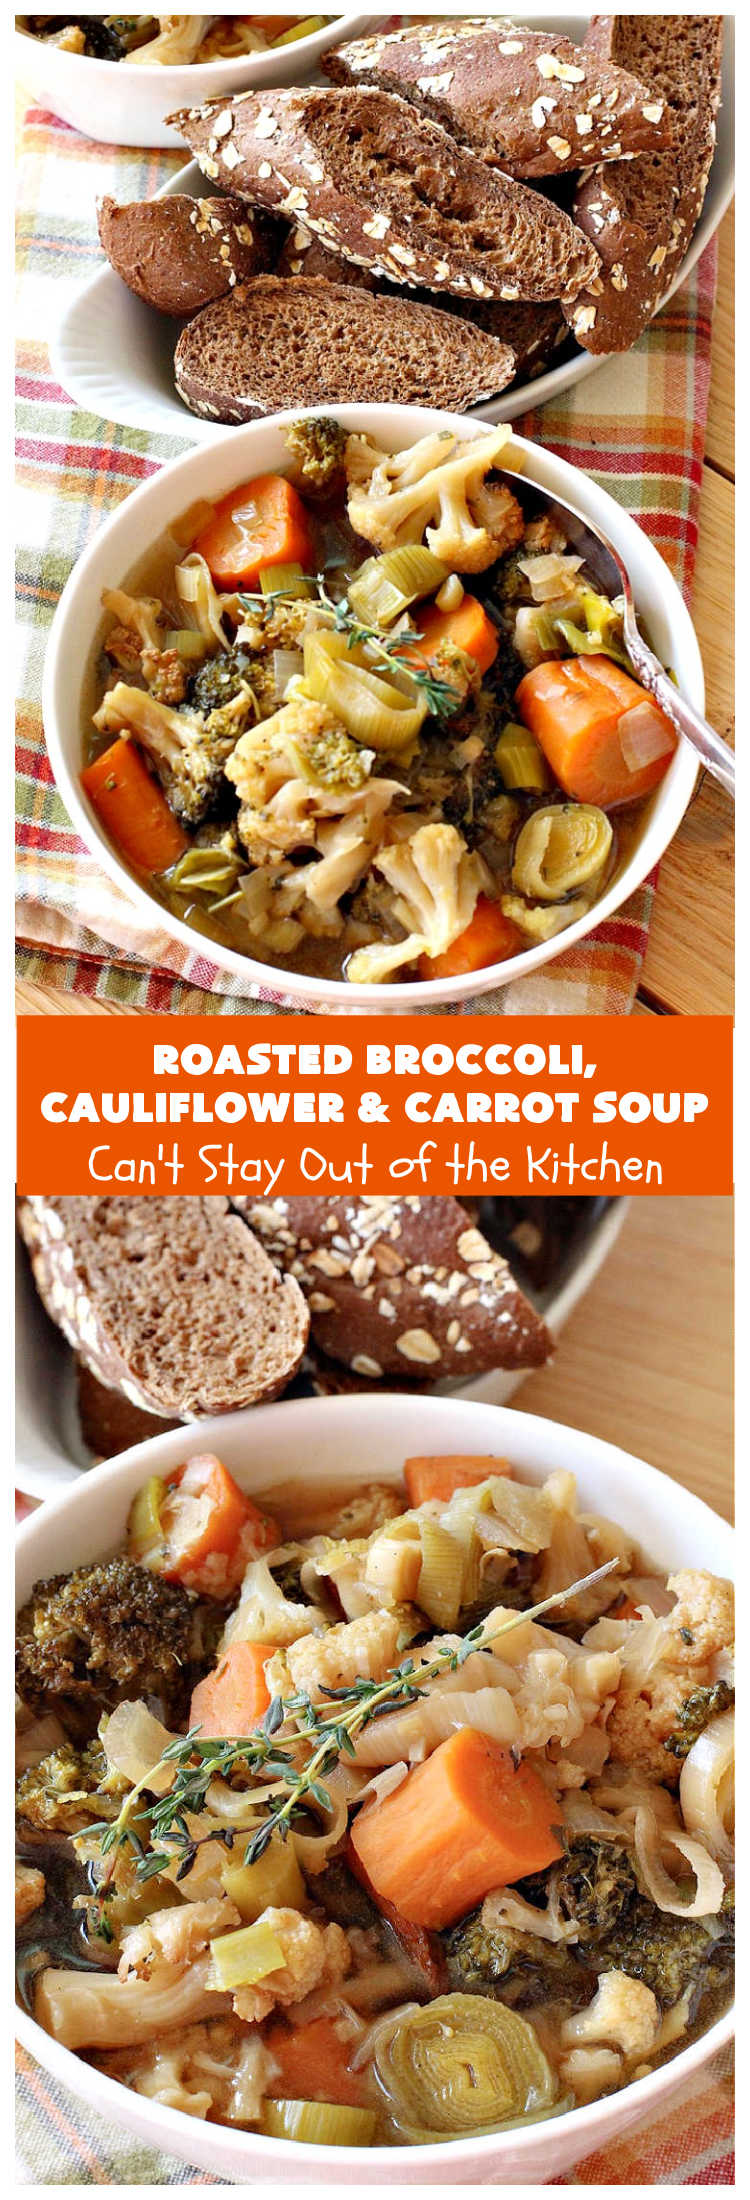 vRoasted Broccoli, Cauliflower and Carrots Soup   Can't Stay Out of the Kitchen   this amazing #soup starts with roasting the #vegetables which really enhances the flavor. This comfort food #recipe is perfect for cold, winter nights. It's also #healthy, #LowCalorie, #vegan & #GlutenFree. #Broccoli #carrots #Cauliflower #BroccoliCauliflowerAndCarrotsSoup